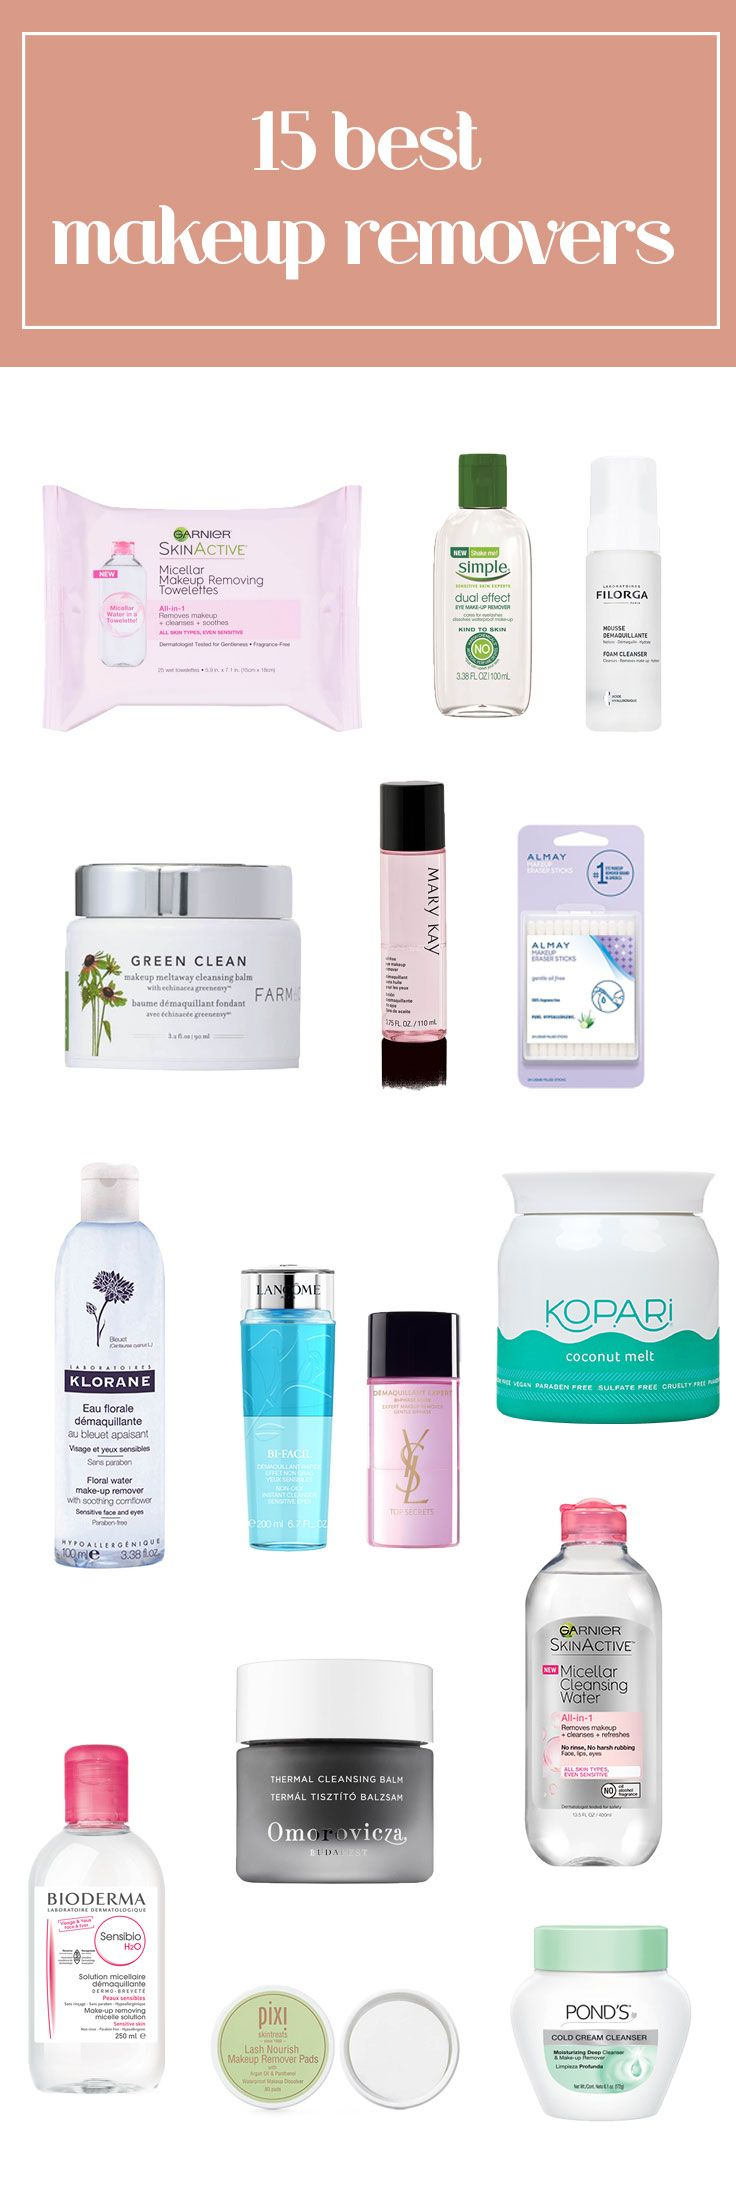 These make up removes for your face and eyes will improve your skin care routine.